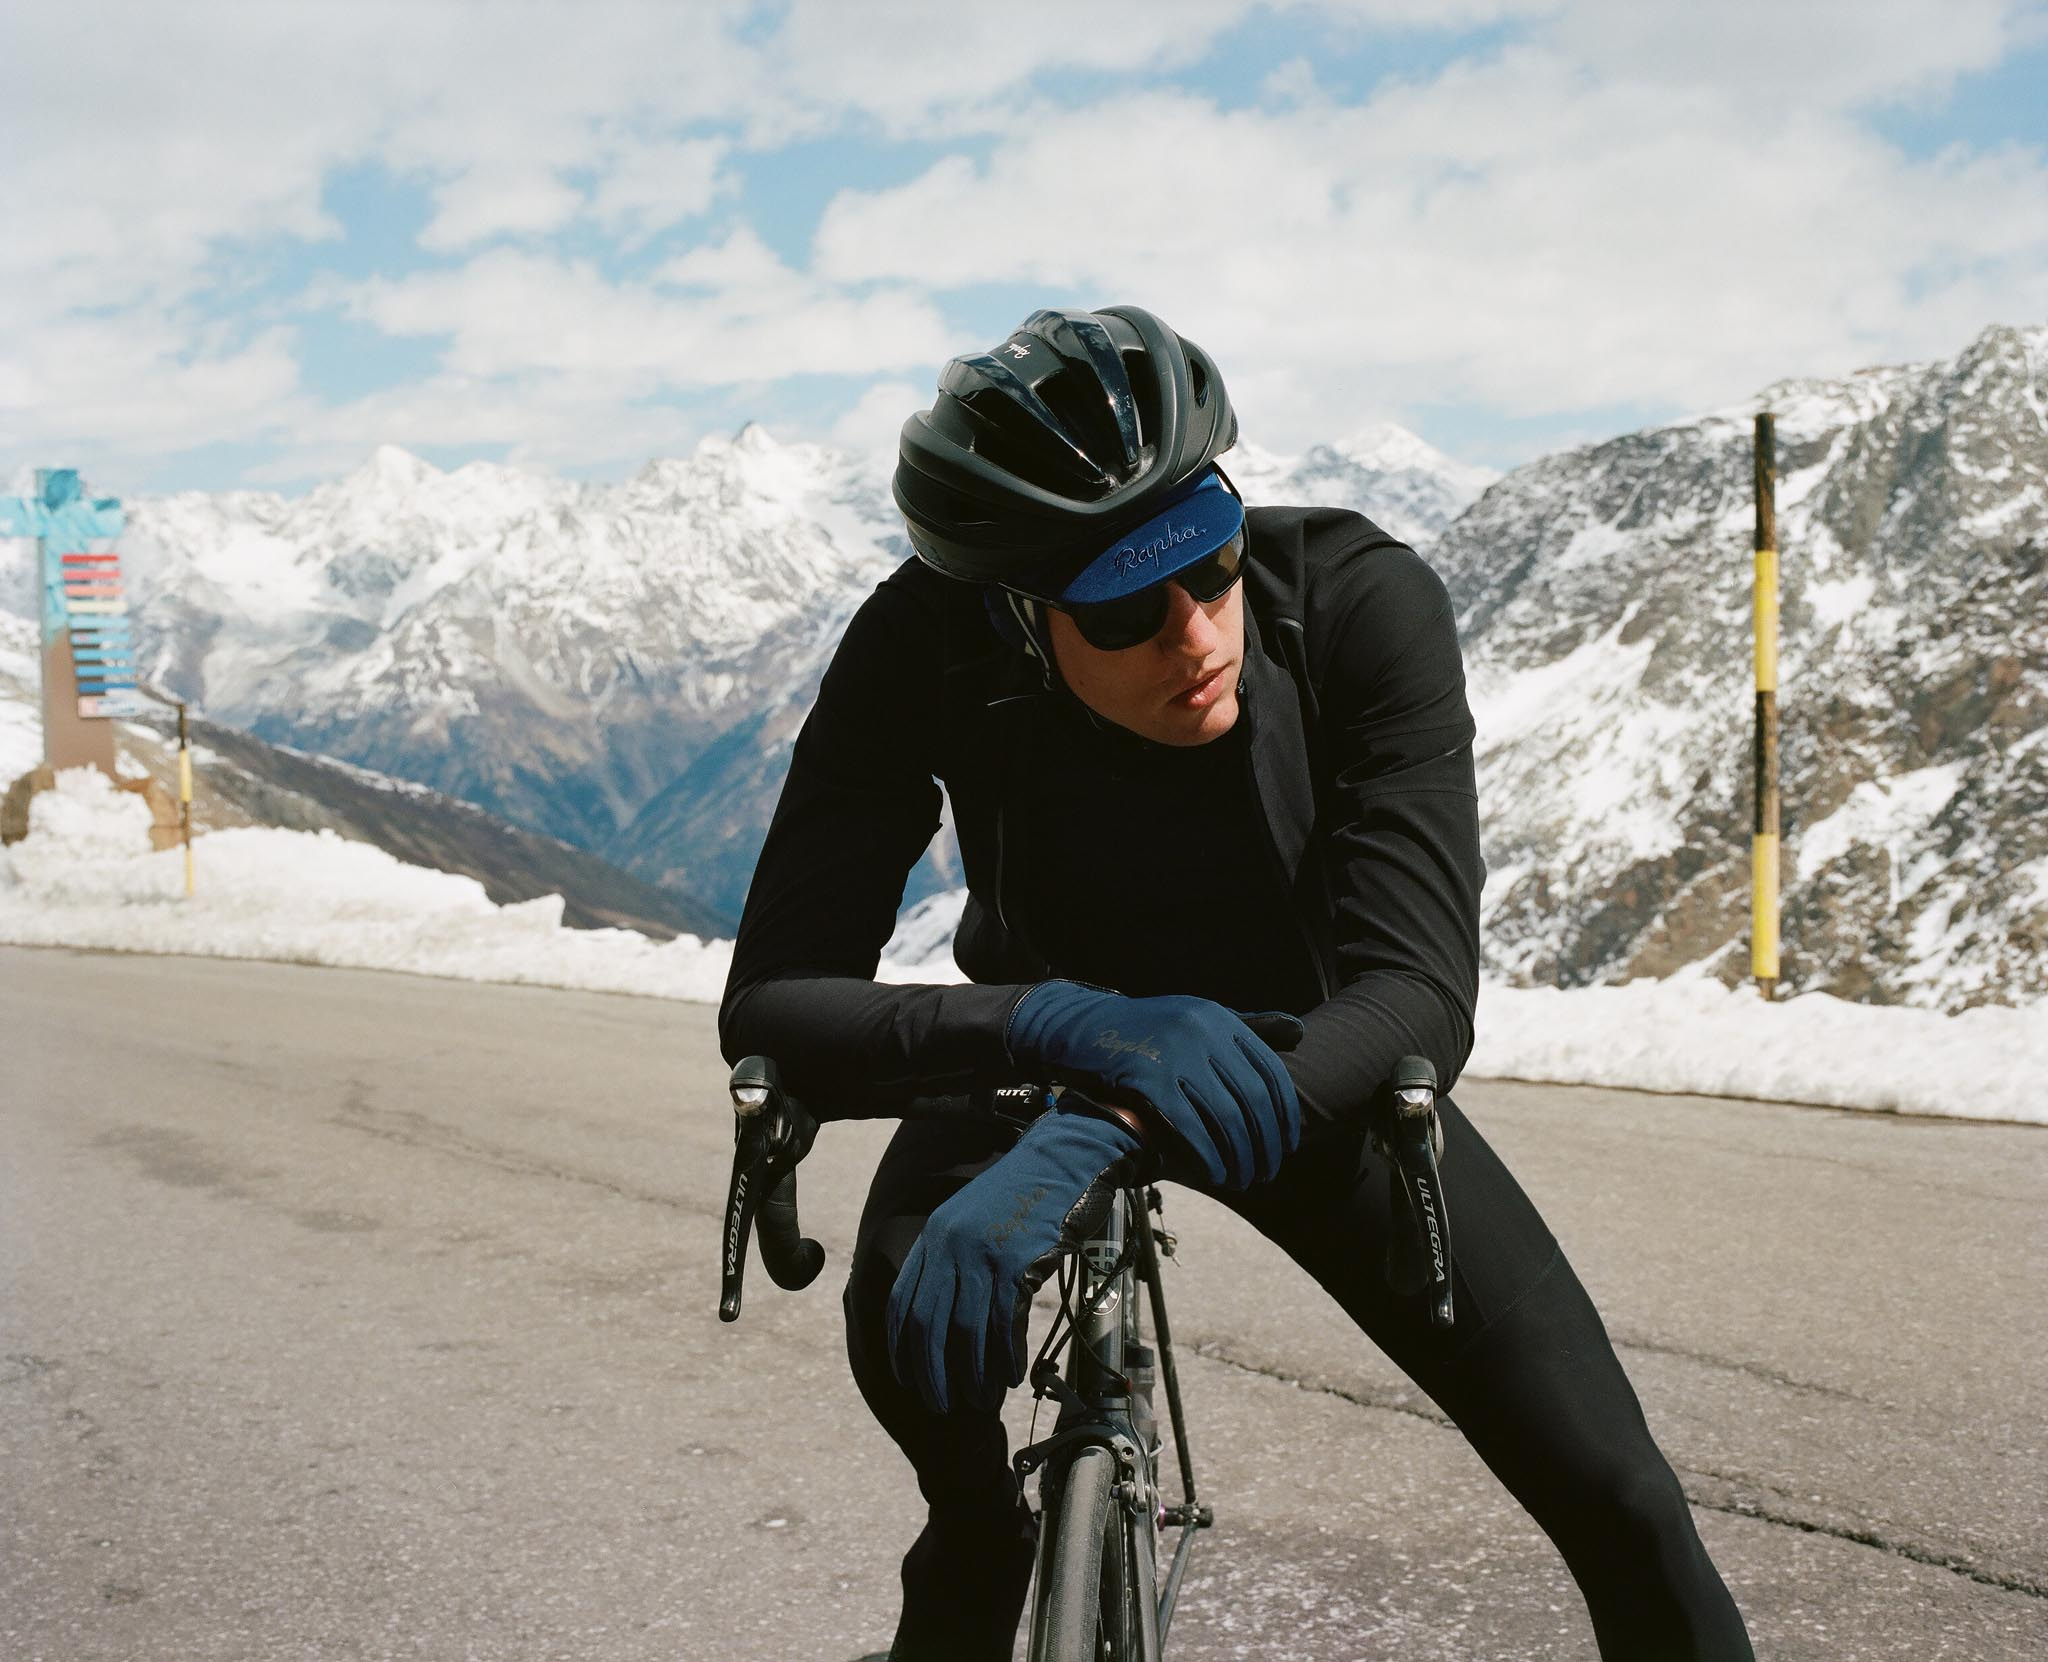 Rapha_2017_Tirol_George_Marshall_hires_024.jpg